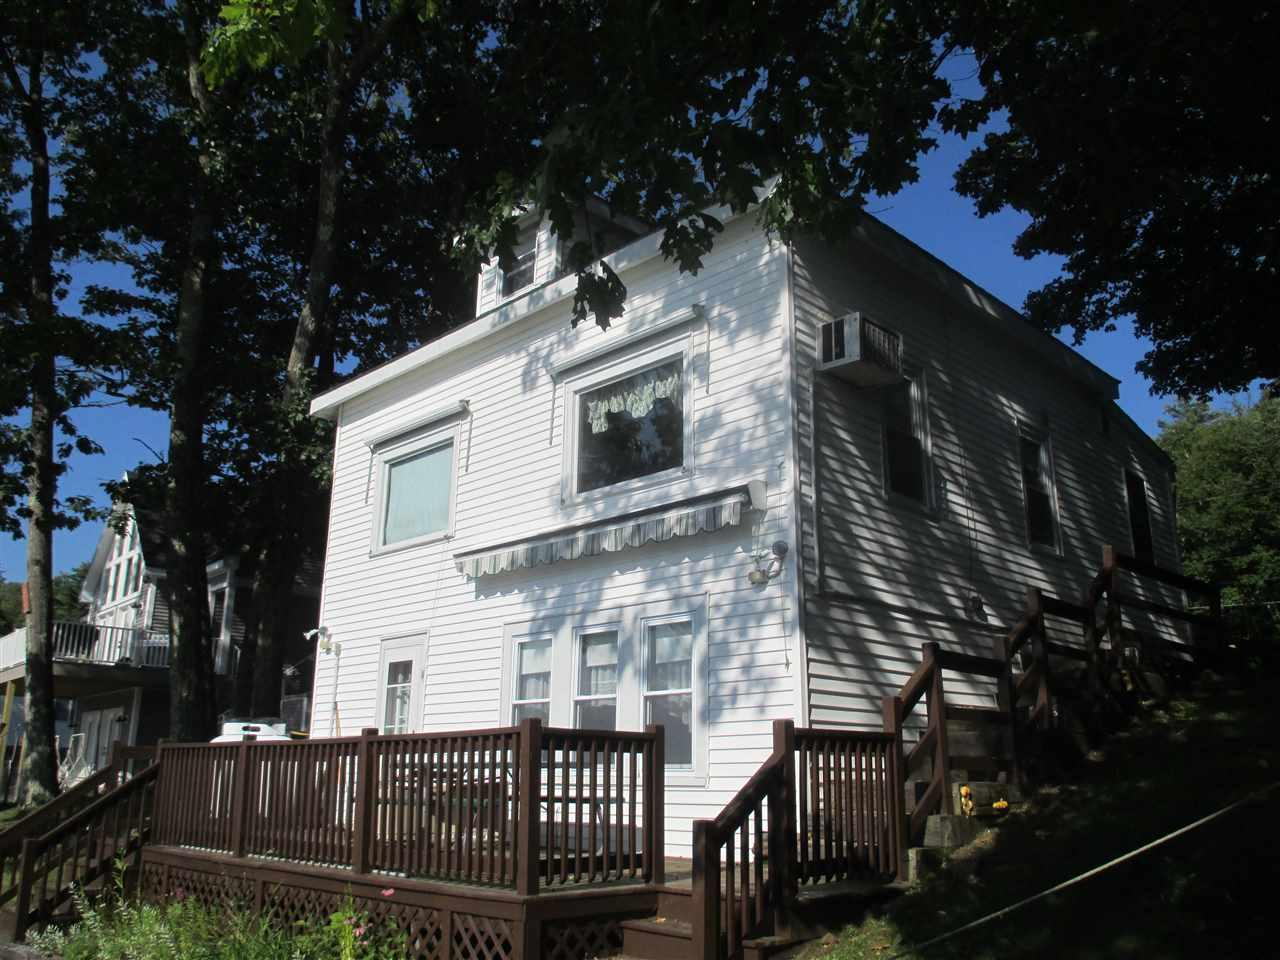 23 Nh Route 106 Gilmanton Nh Mls 4653299 Better Homes And Gardens Real Estate